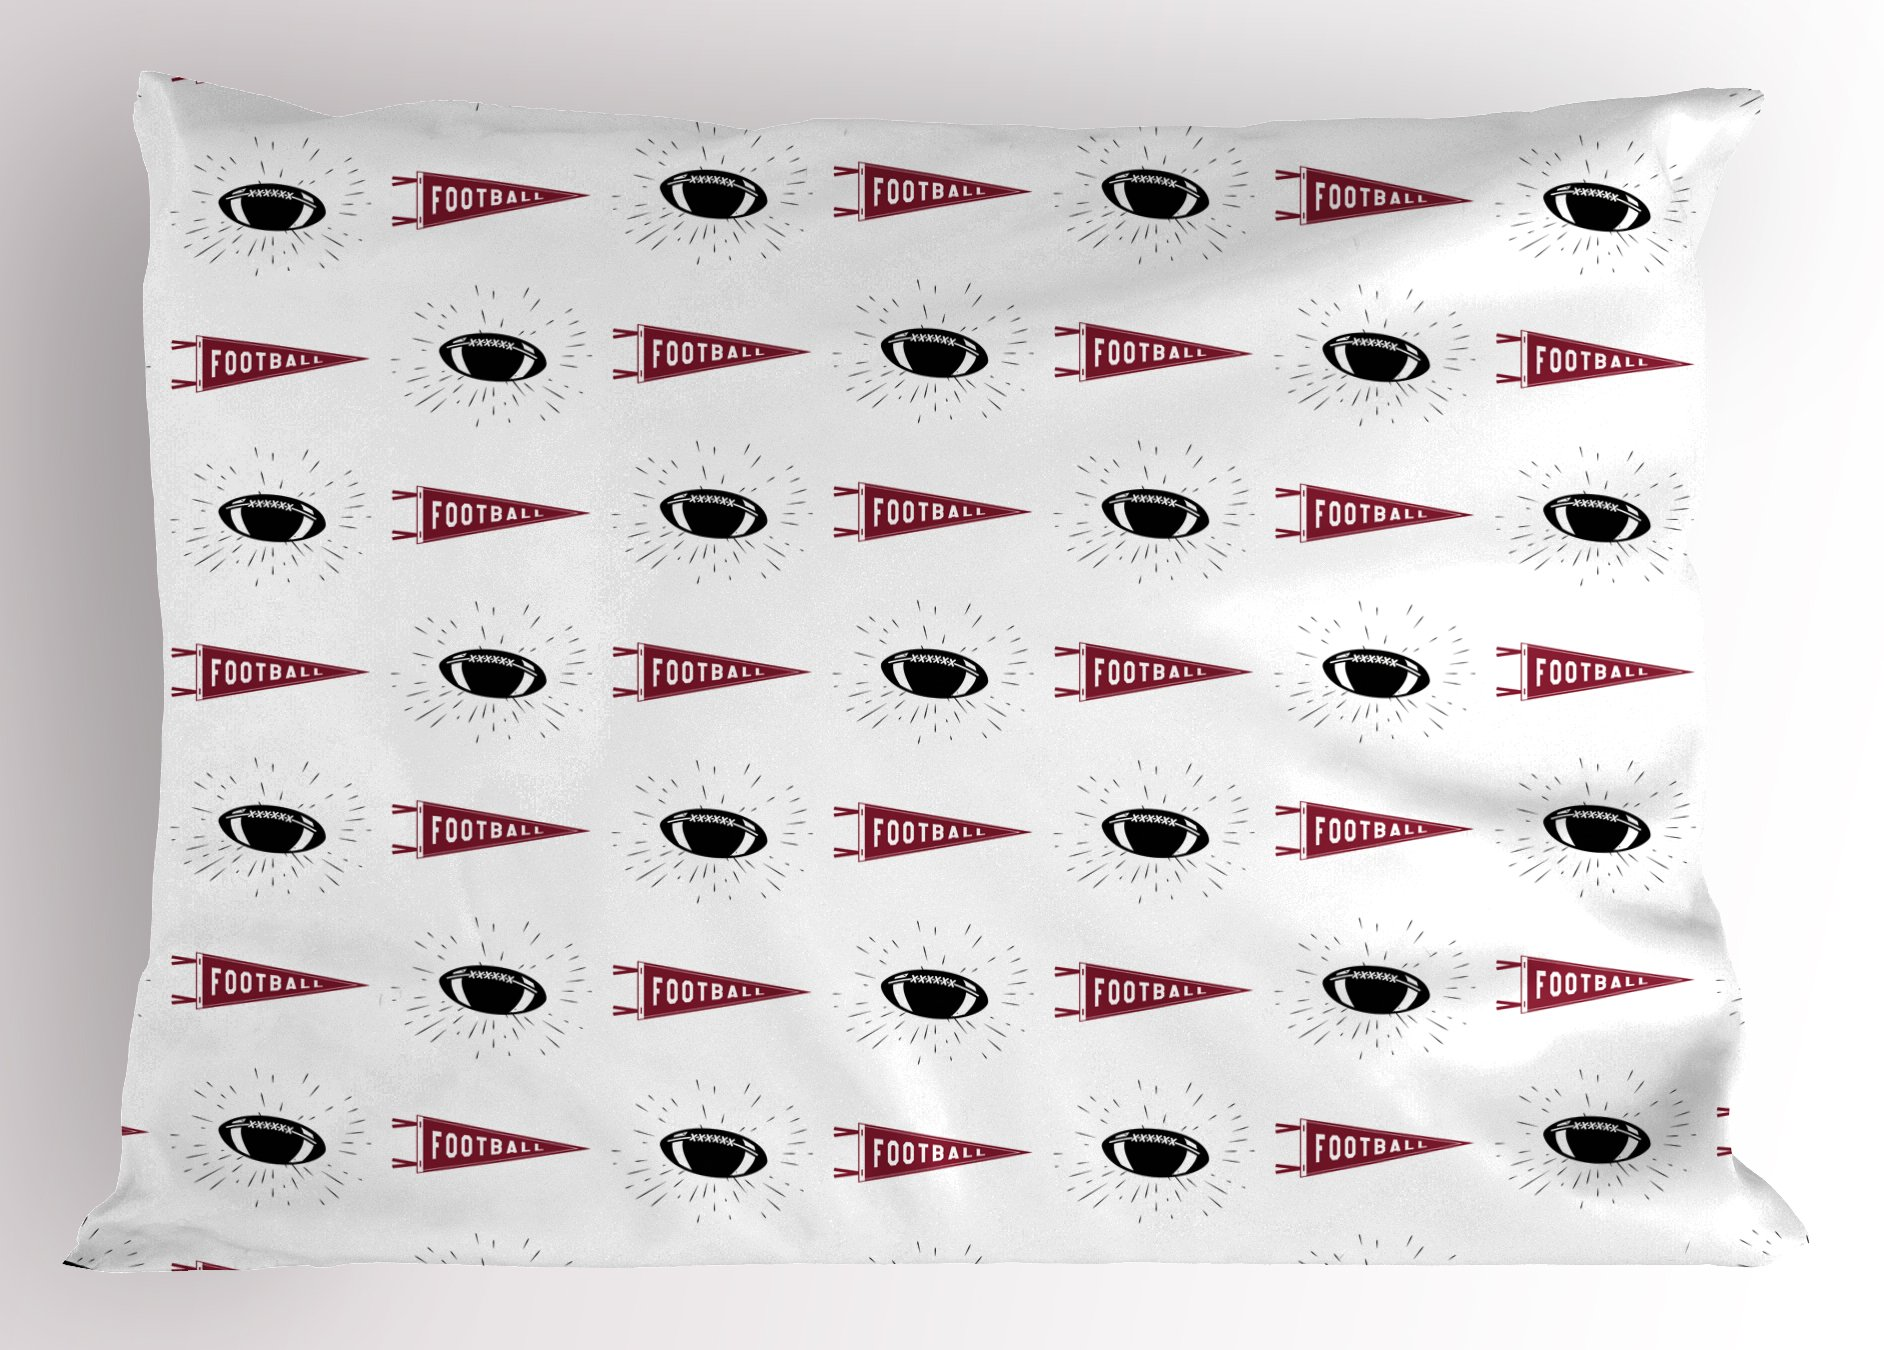 Ambesonne Football Pillow Sham, Sports Symbols Pennants Balls with Retro Burst Effect Graphic Game Icons, Decorative Standard Queen Size Printed Pillowcase, 30 X 20 inches, Maroon Black White